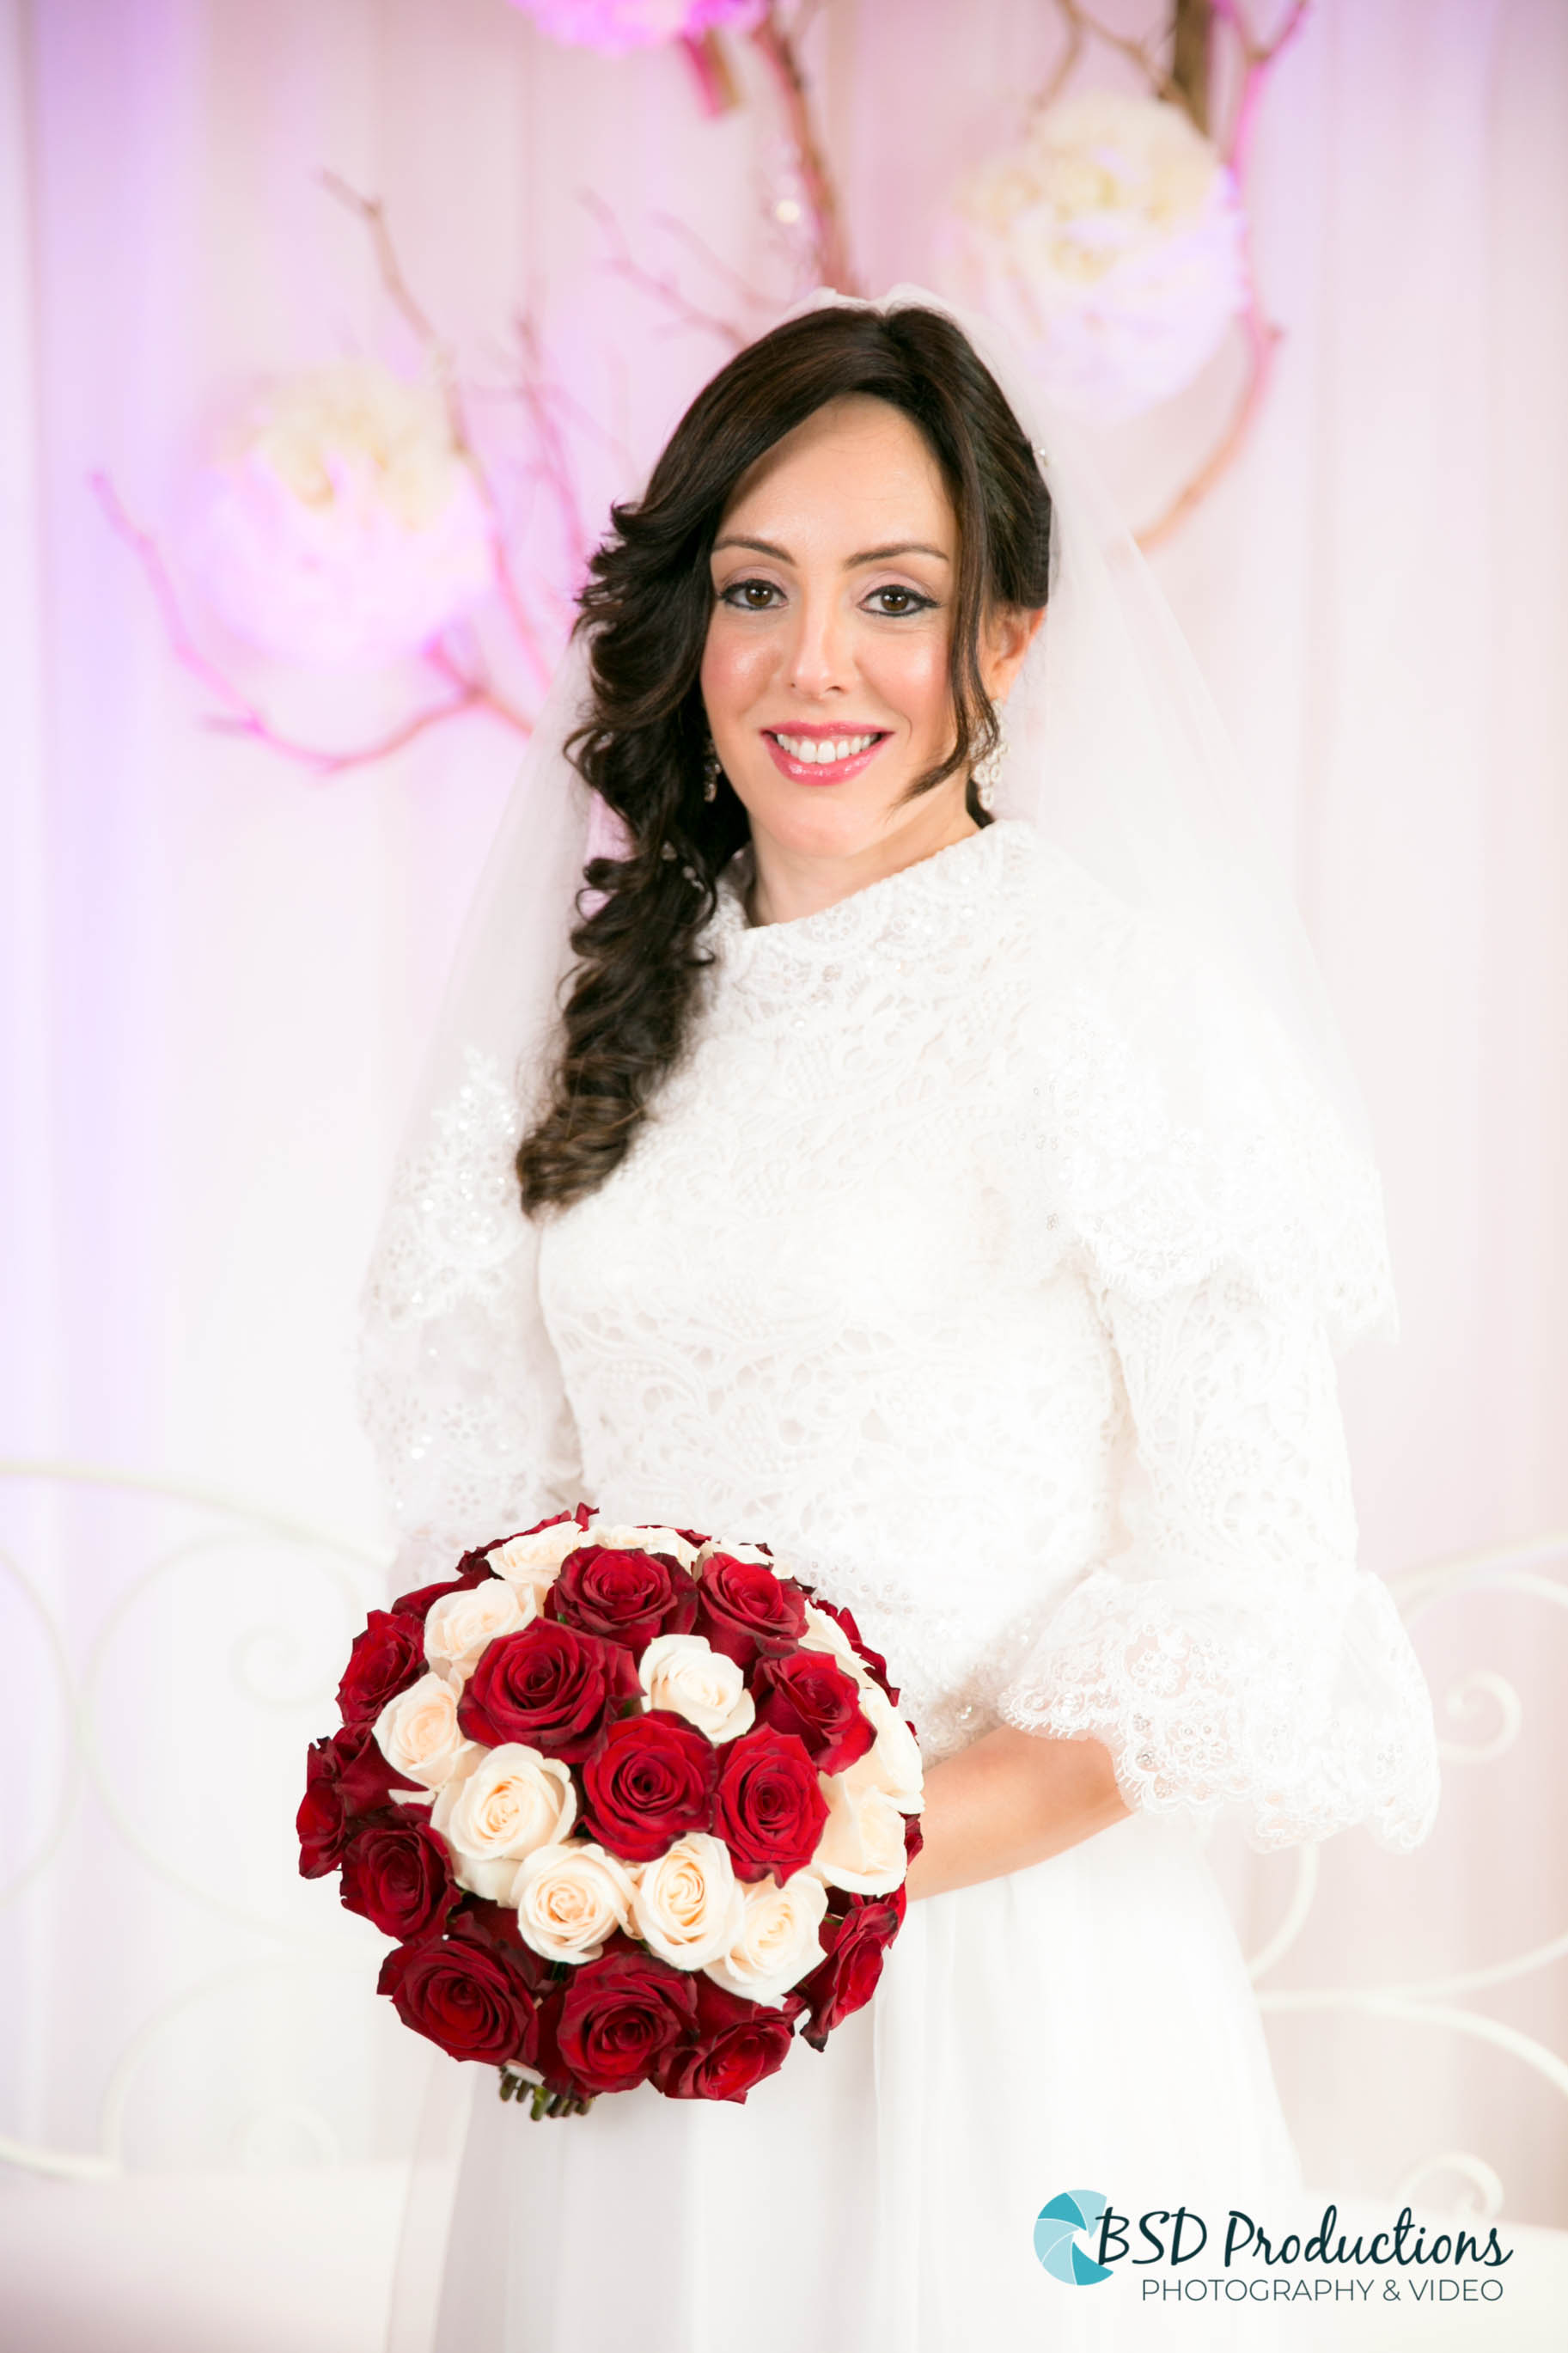 UH5A2436 Wedding – BSD Productions Photography